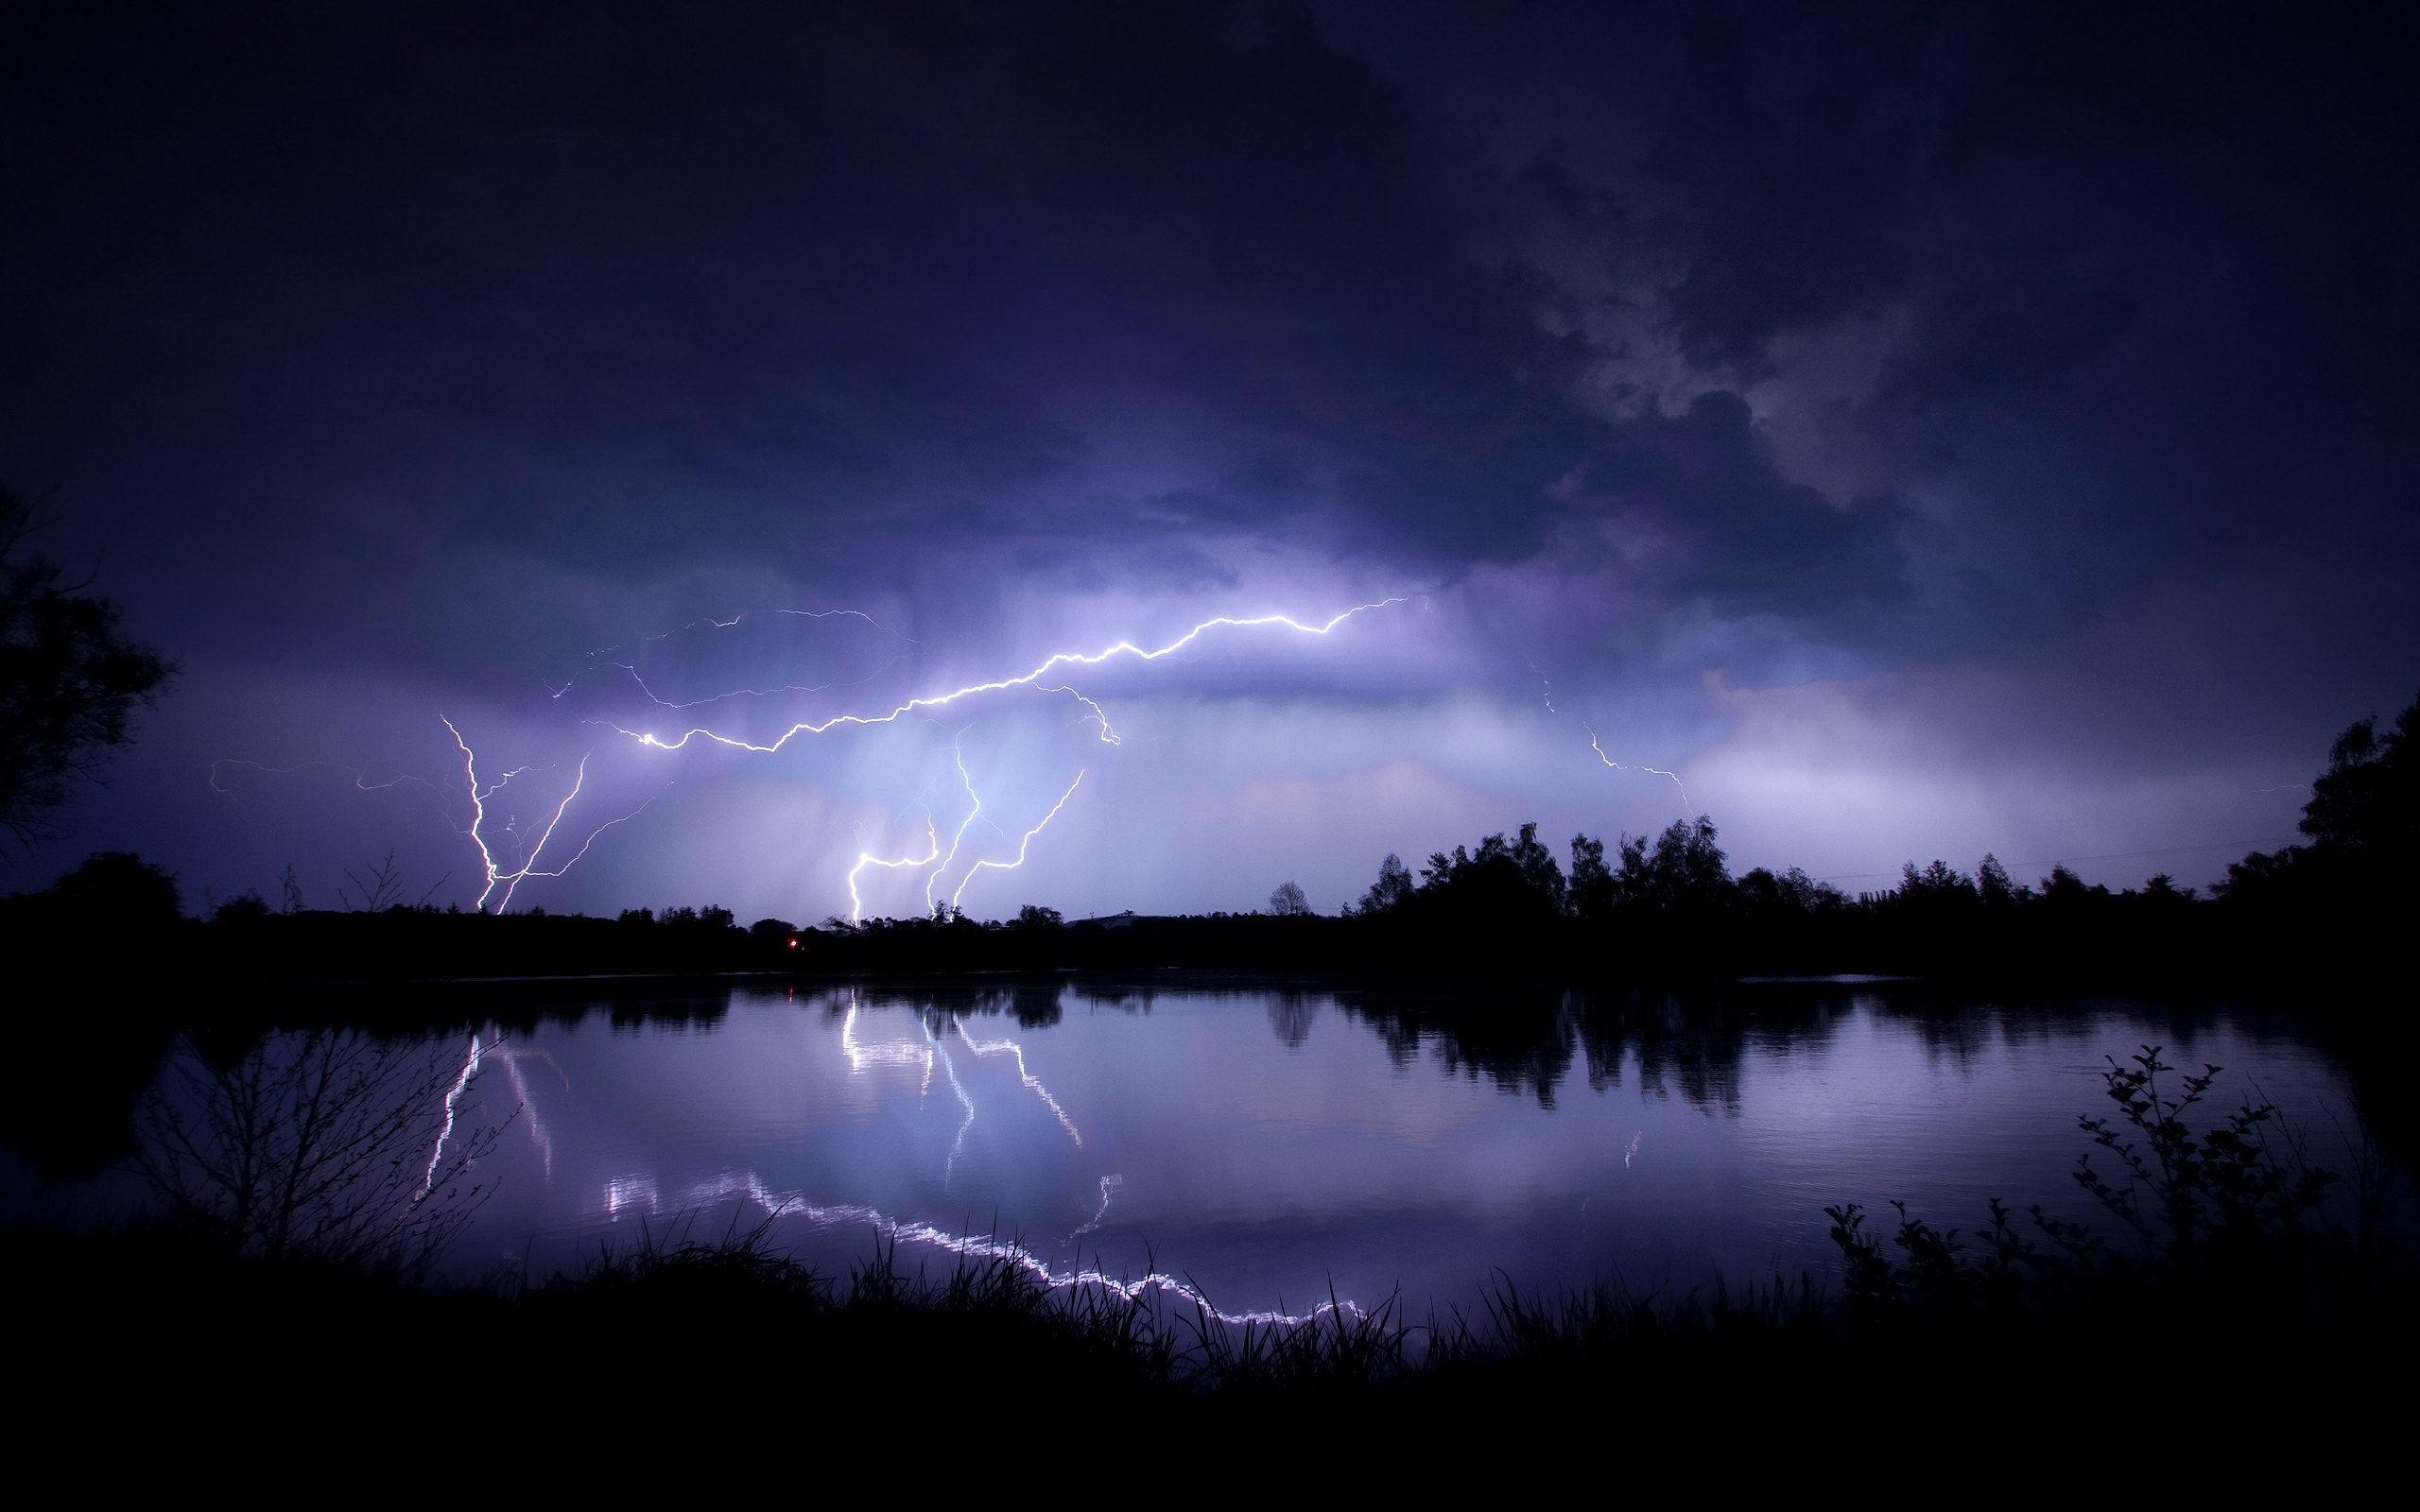 Lightning Storm over a Lake at night. : wallpapers